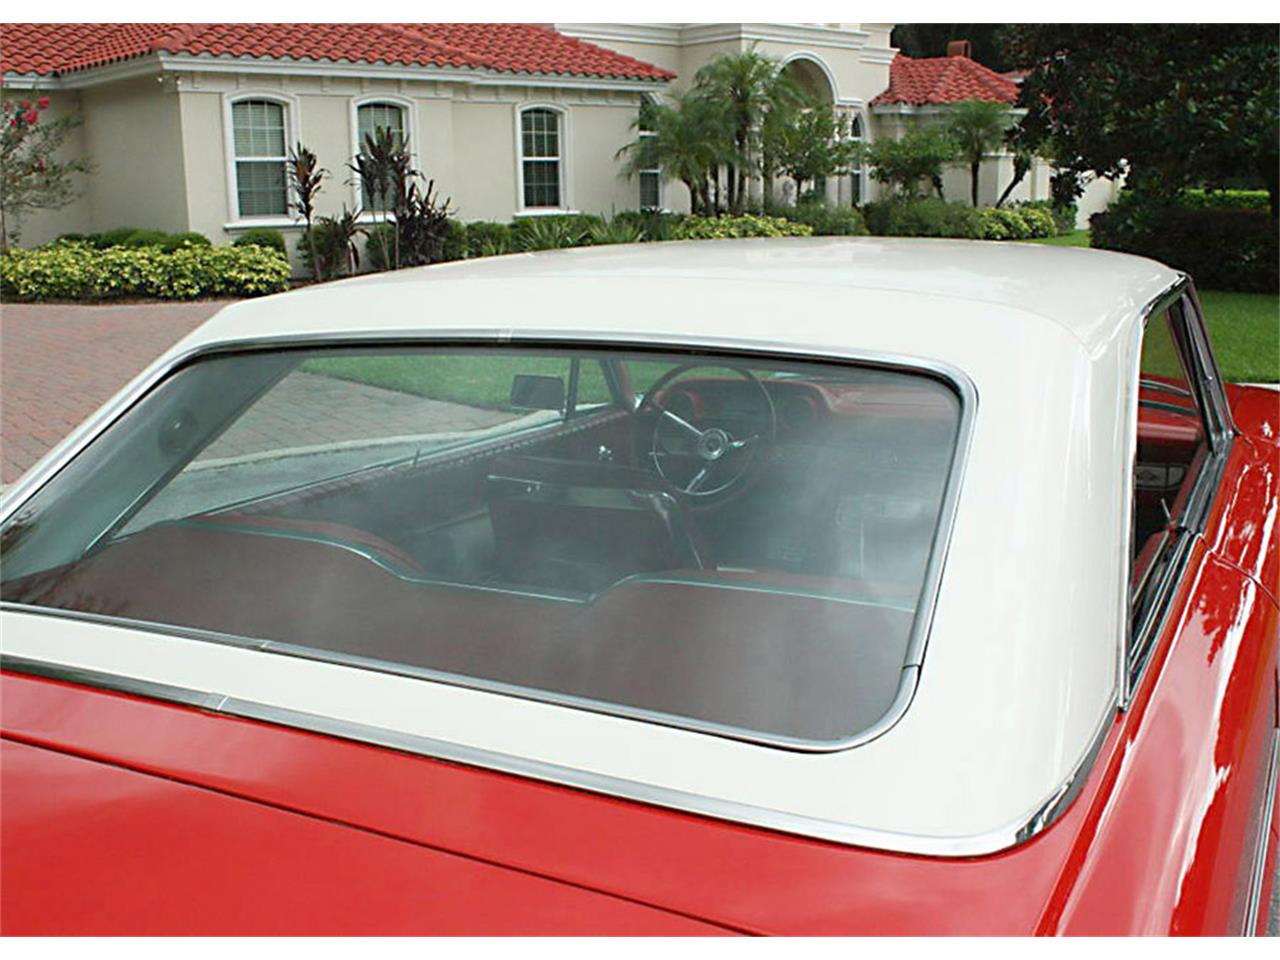 Large Picture of '64 Galaxie 500 located in Lakeland Florida - $27,500.00 - NOH3